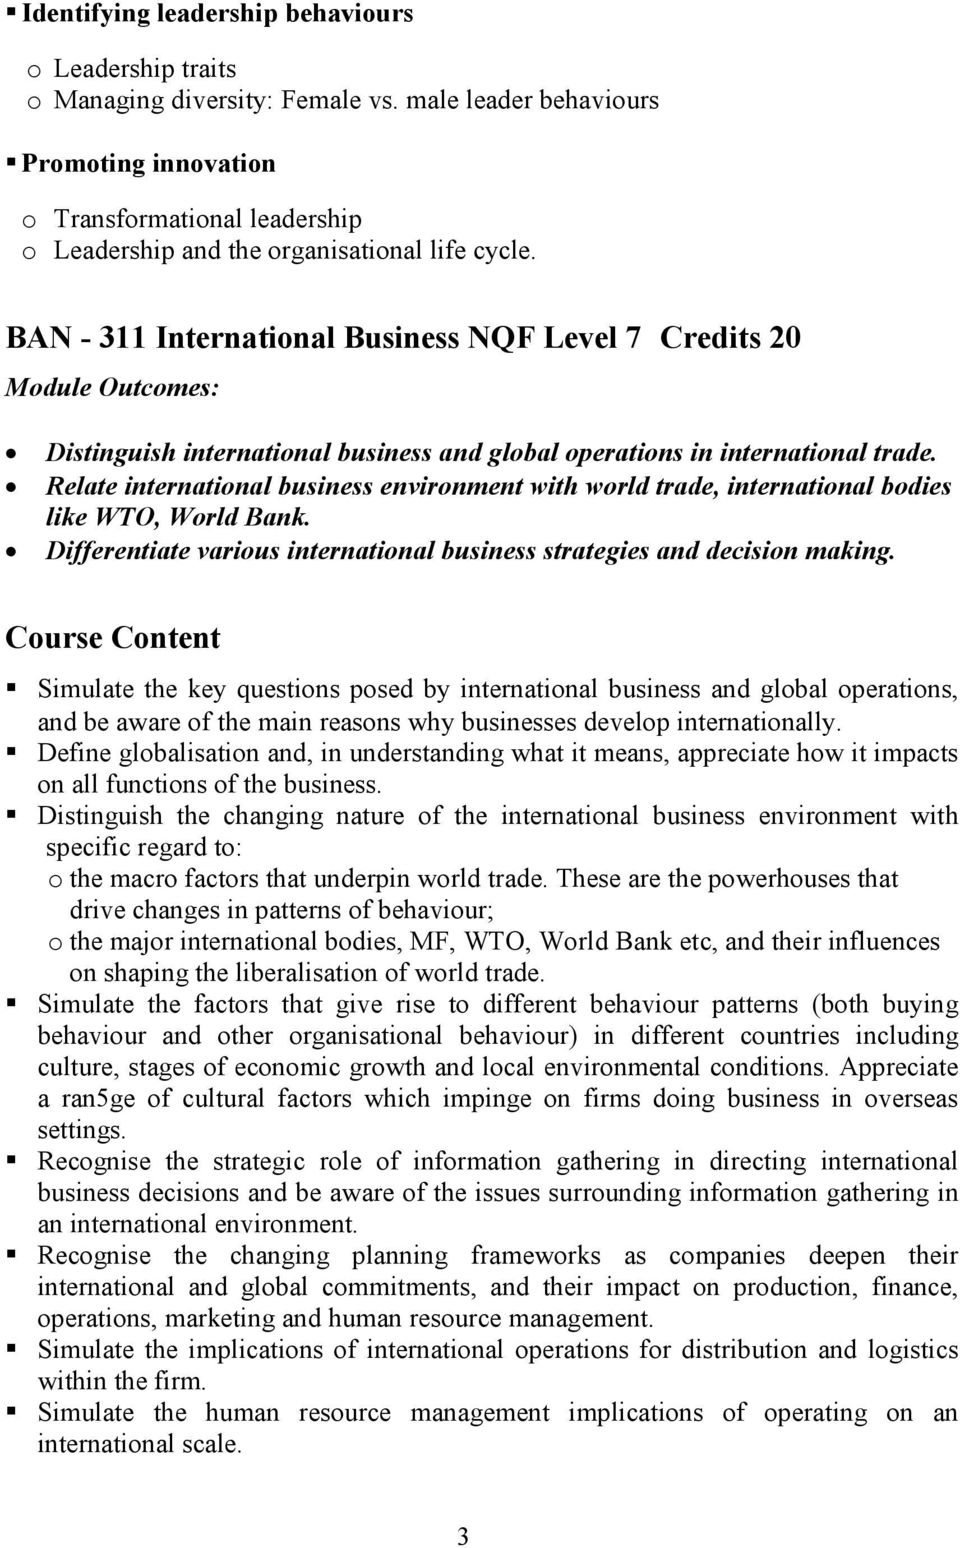 BAN - 311 International Business NQF Level 7 Credits 20 Distinguish international business and global operations in international trade.